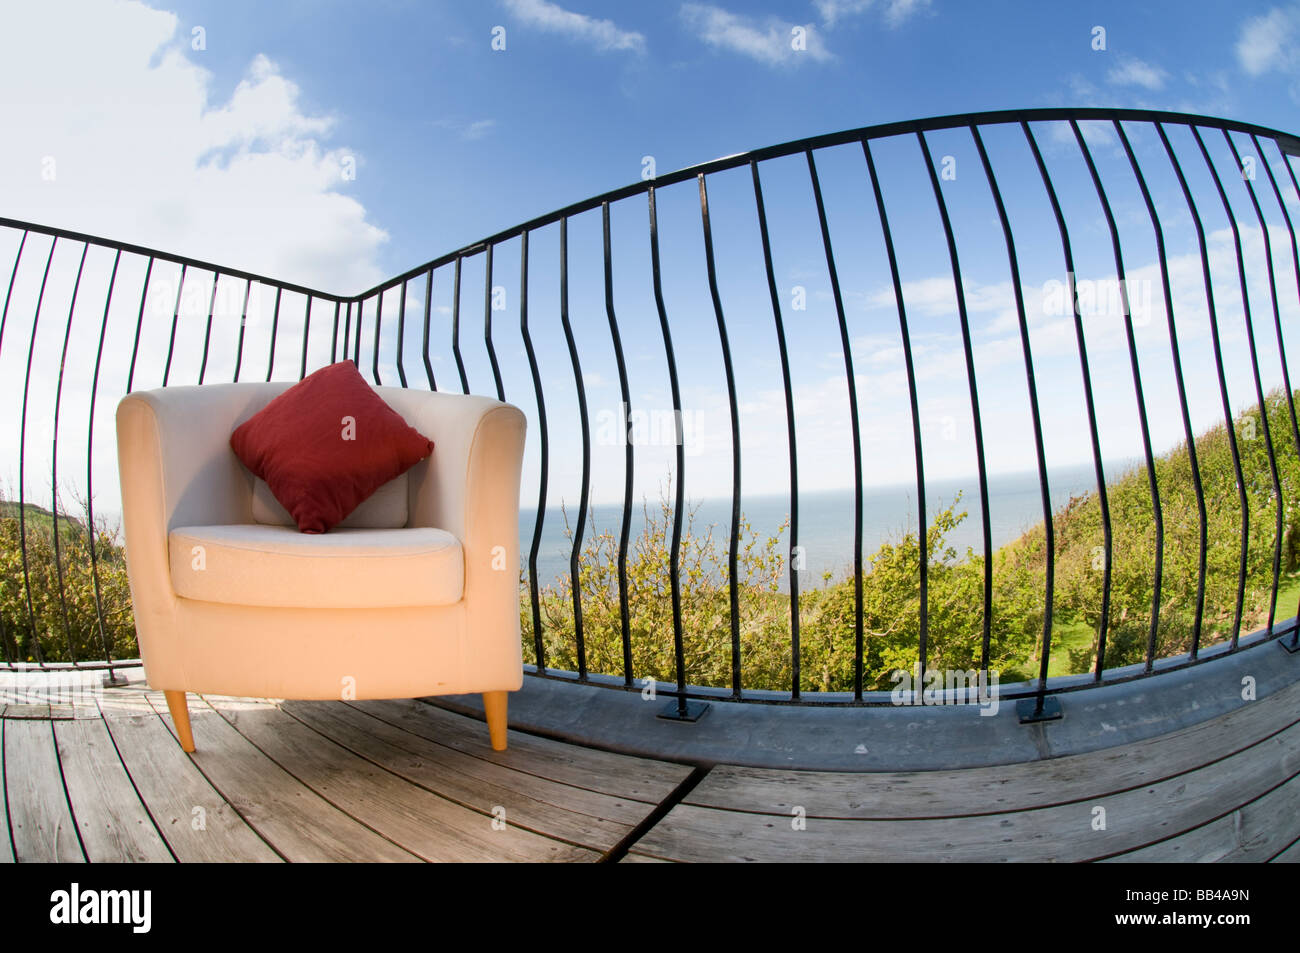 Chair On Balcony looking Out To Sea - Stock Image